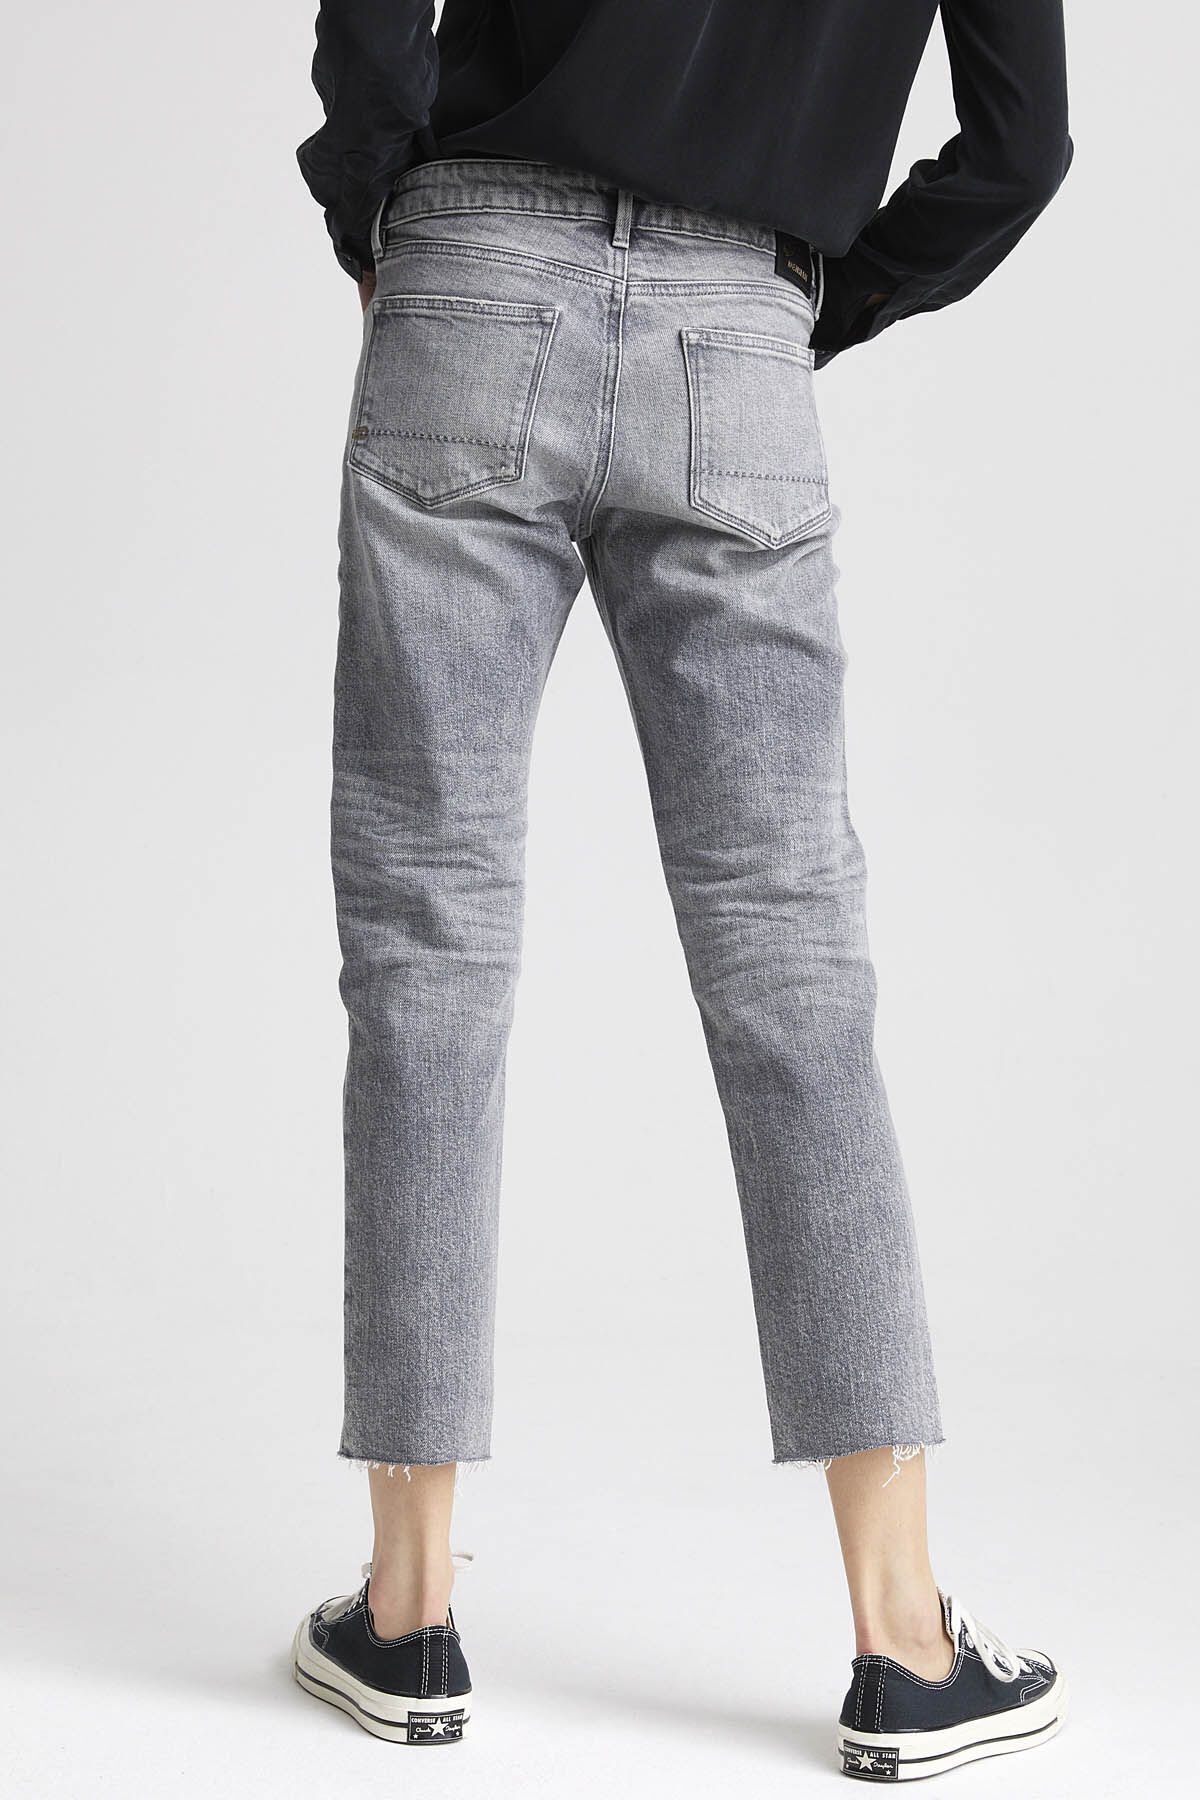 LIZ ANKLE Ripped & Repaired Denim - Straight Fit